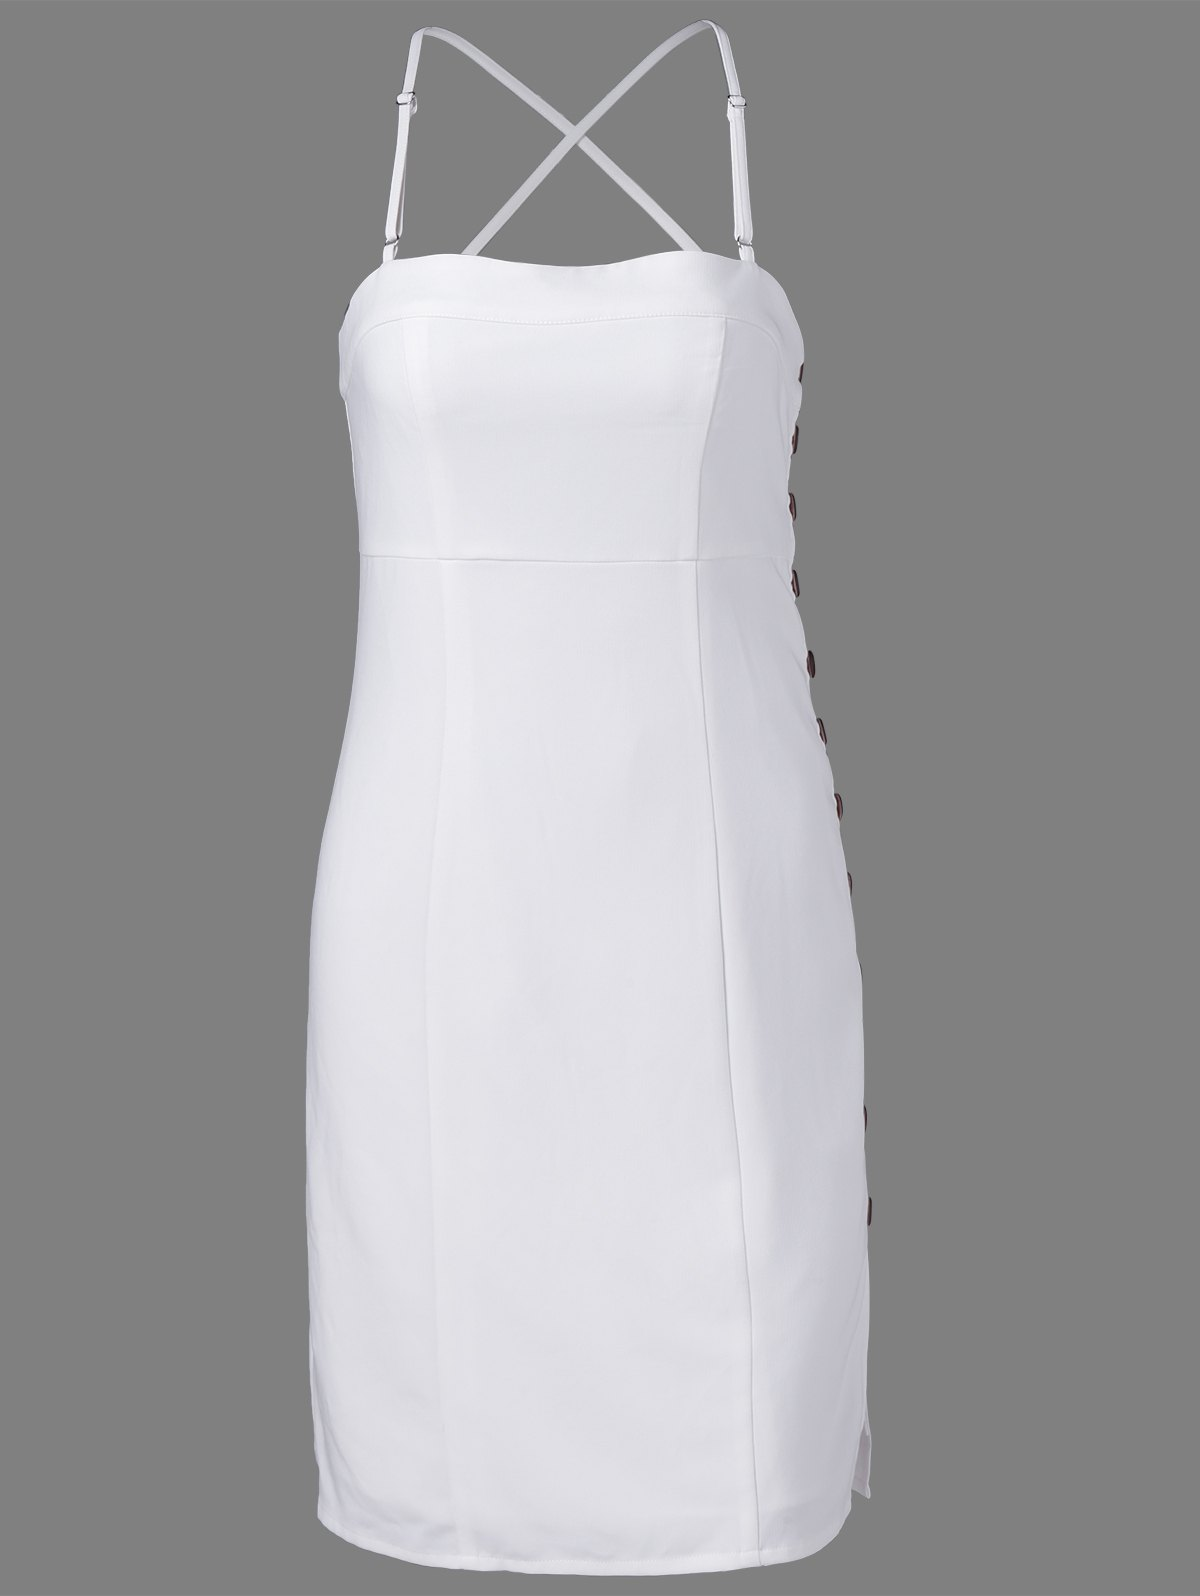 Stylish Spaghetti Straps Fastener White Dress For Women - WHITE XL